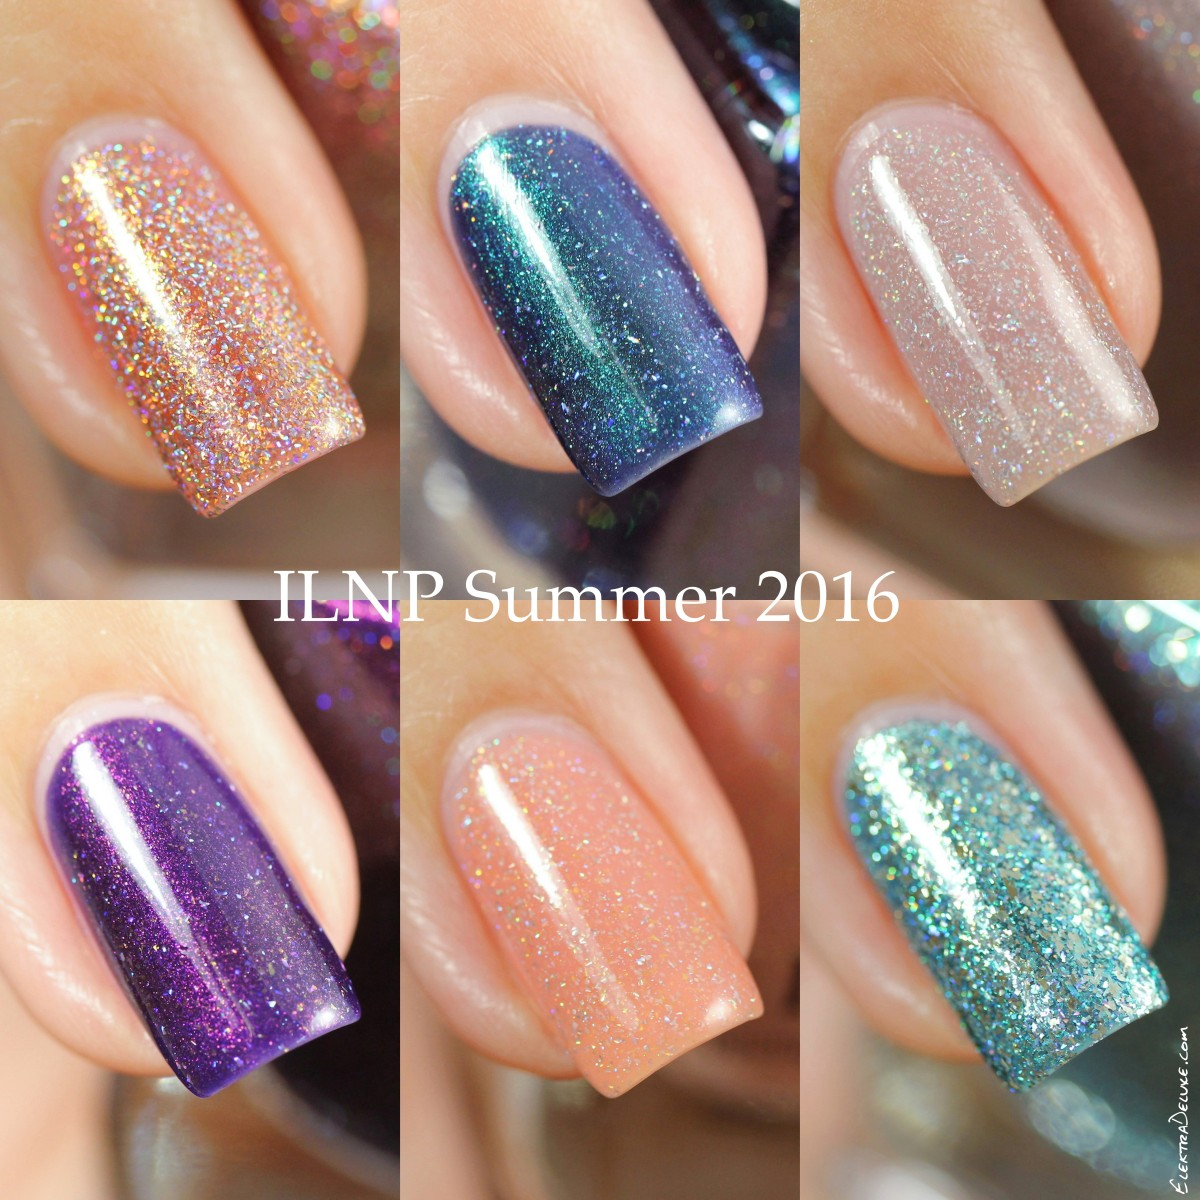 ILNP Summer Collection - Swatches & Review